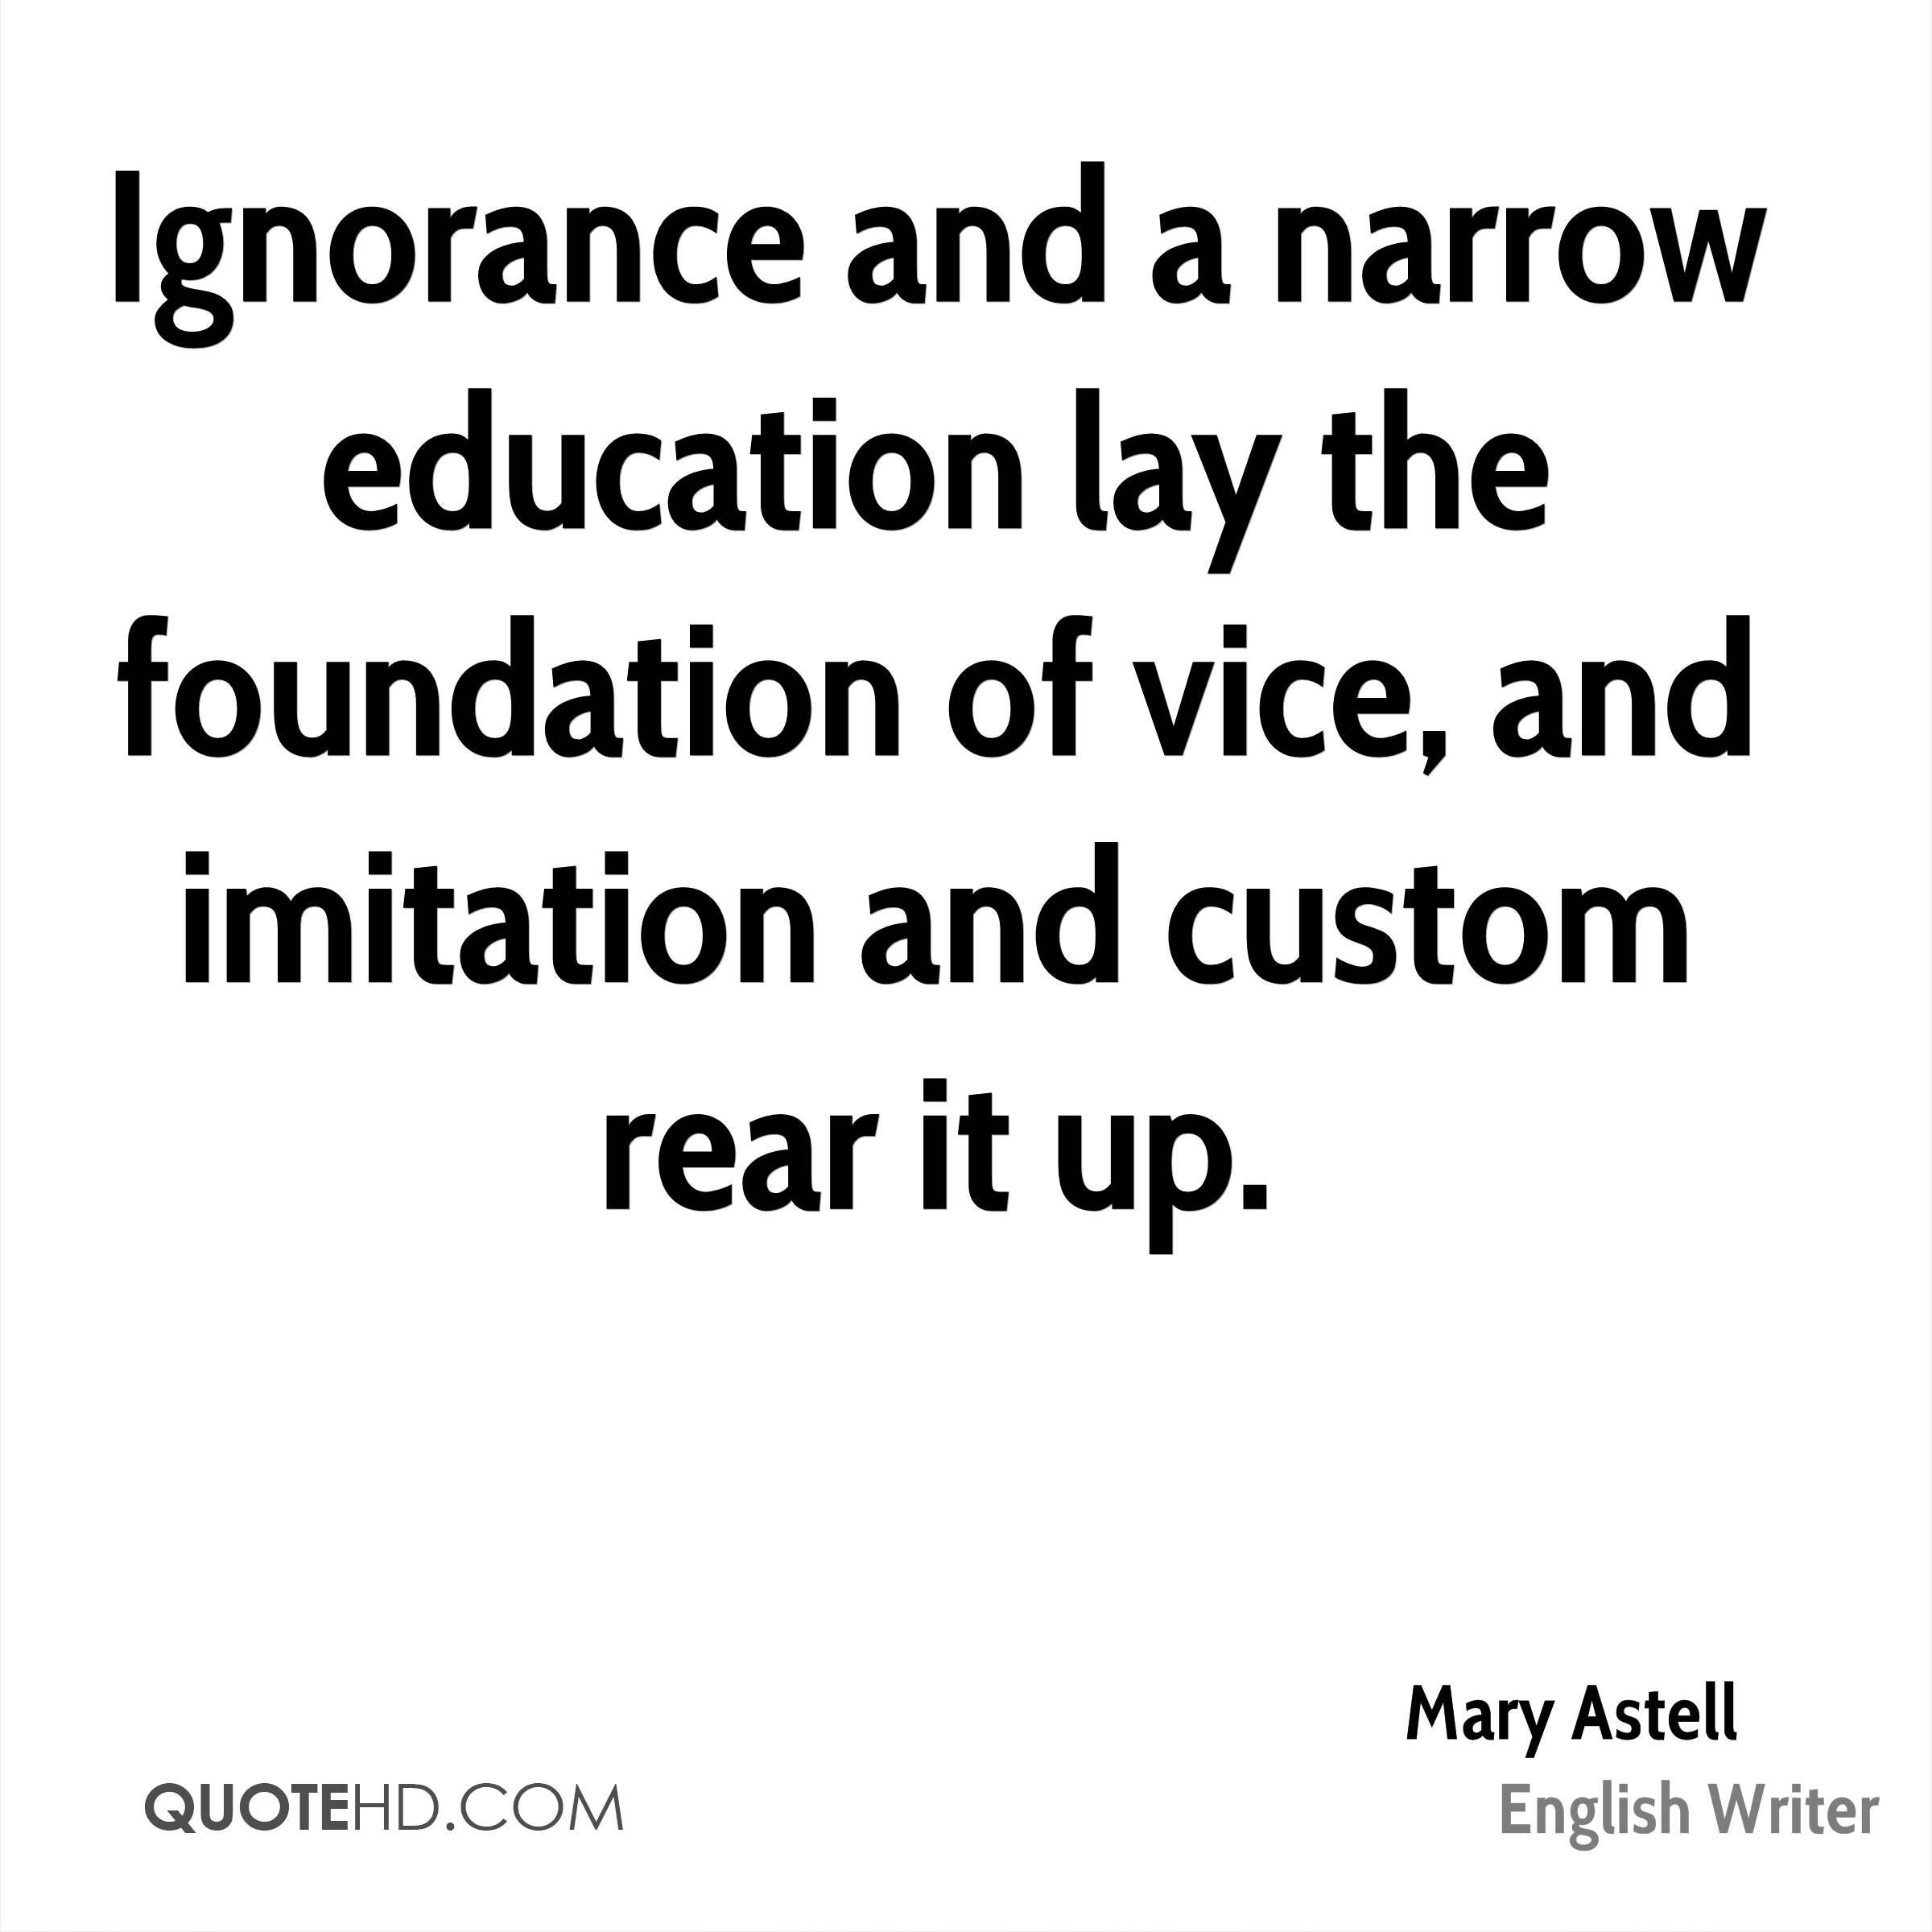 Ignorance and a narrow education lay the foundation of vice, and imitation and custom rear it up.